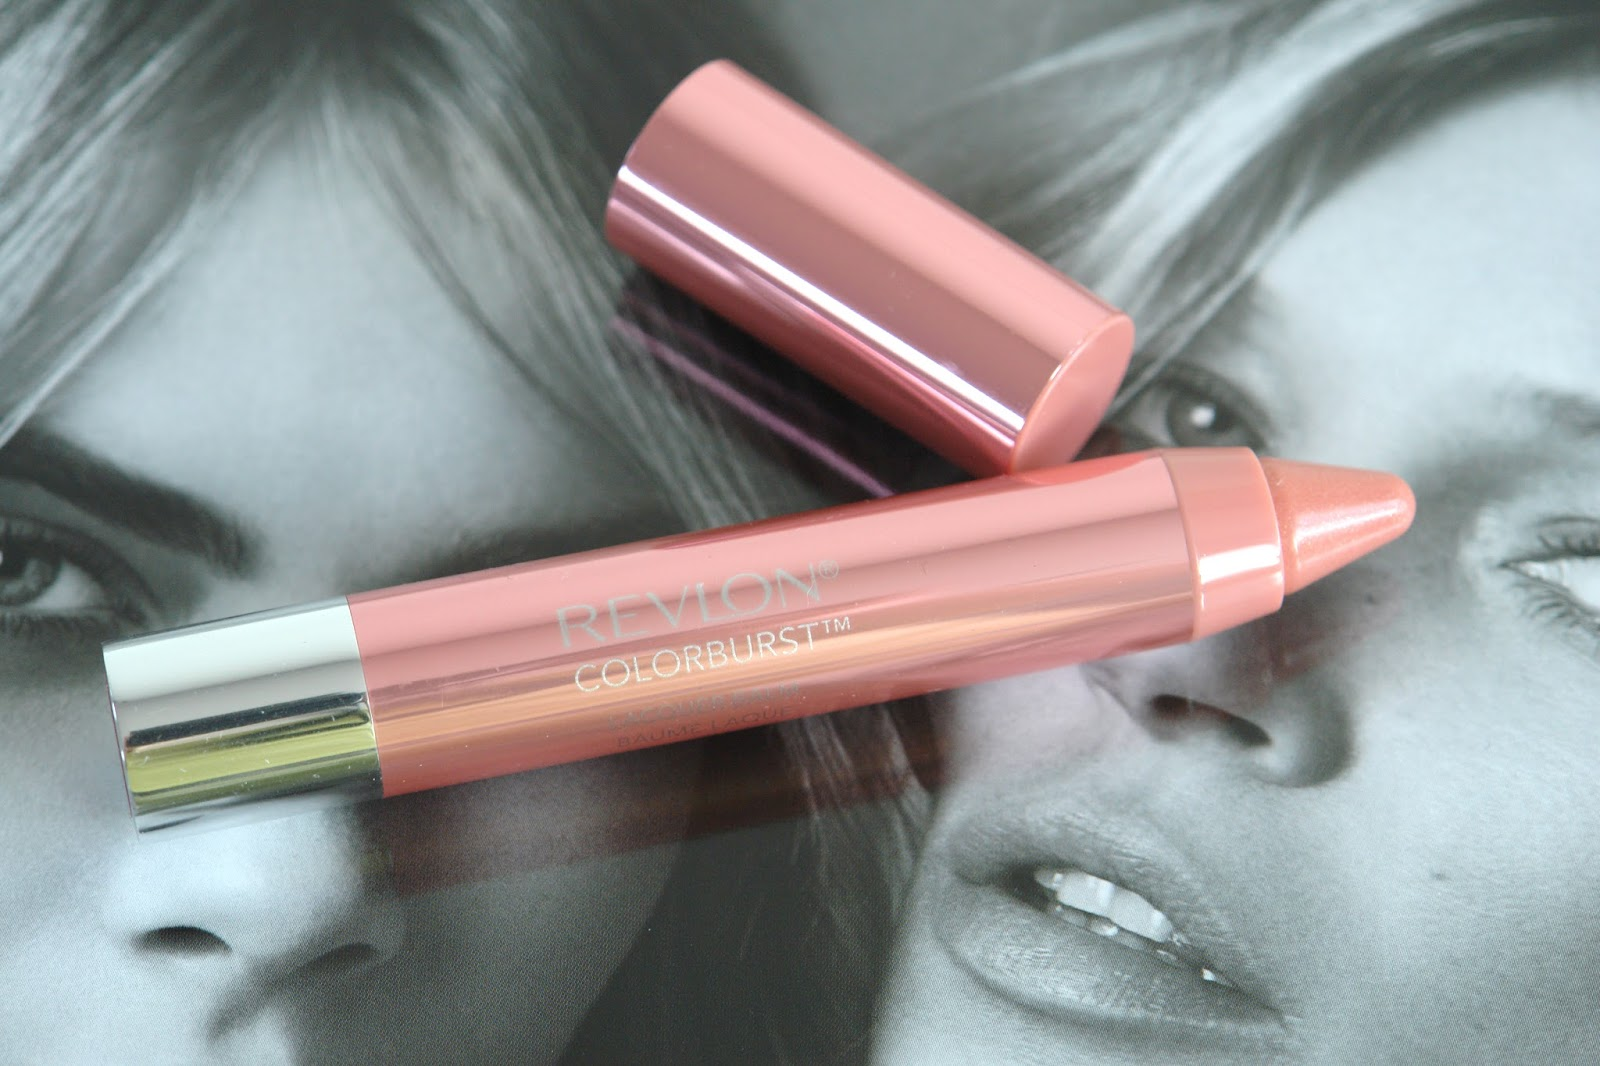 Revlon Colorburst Lacquer Balm in Demure, beauty, lip gloss, lipstick, make up, review, Revlon, review, swatches, UK blog, blogger